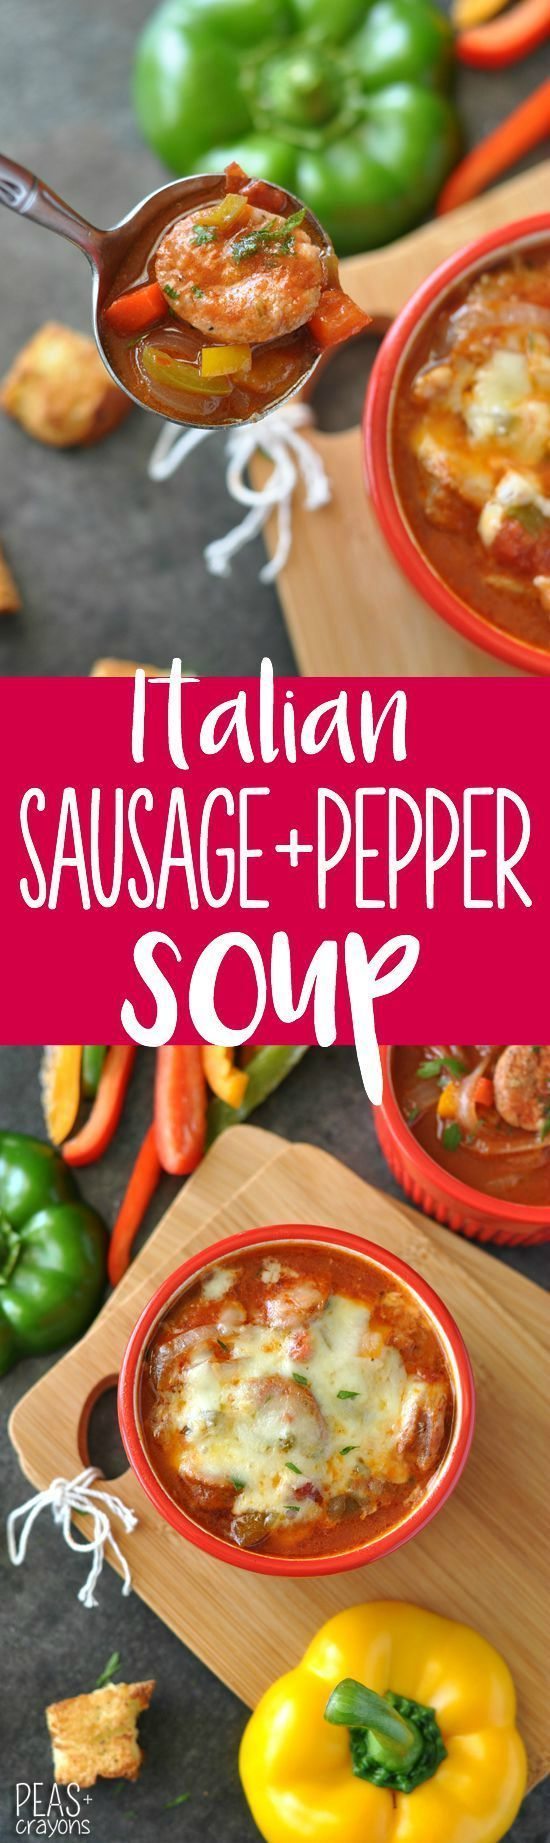 Italian Sausage, Pepper, and Onion Soup :: a healthy spin on a comfort food classic. I'm obsessed!